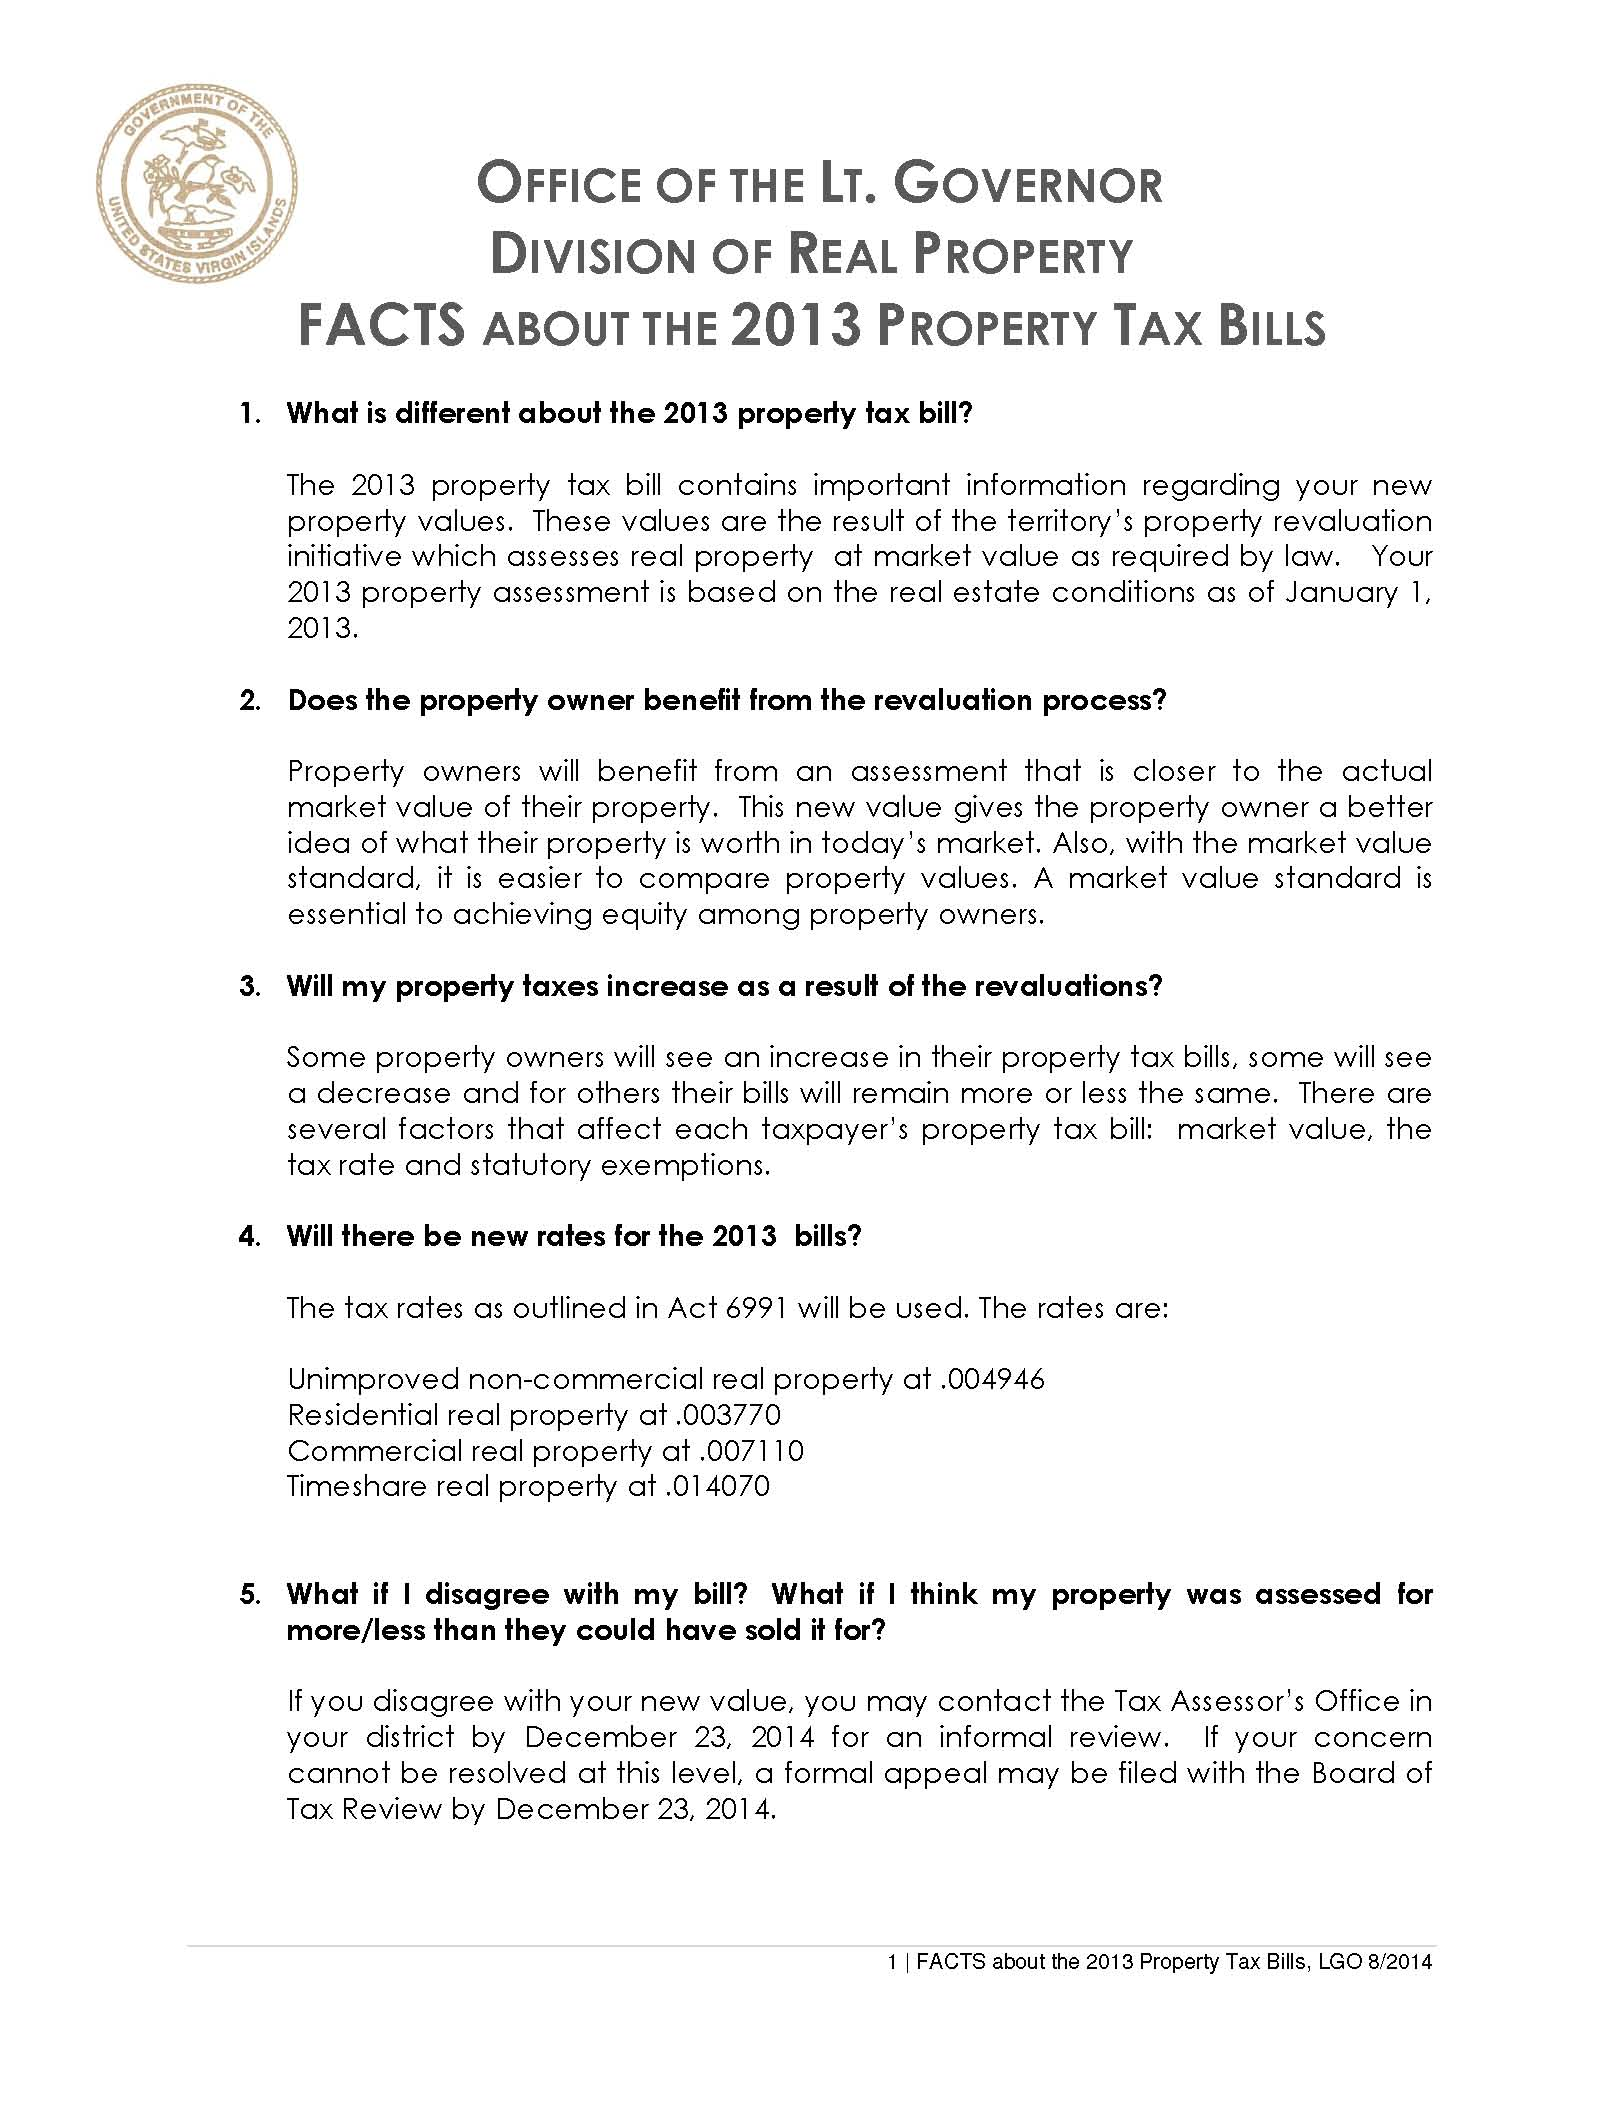 FAQs-about-the-2013-Property-Tax-Bills_Page_1.jpg